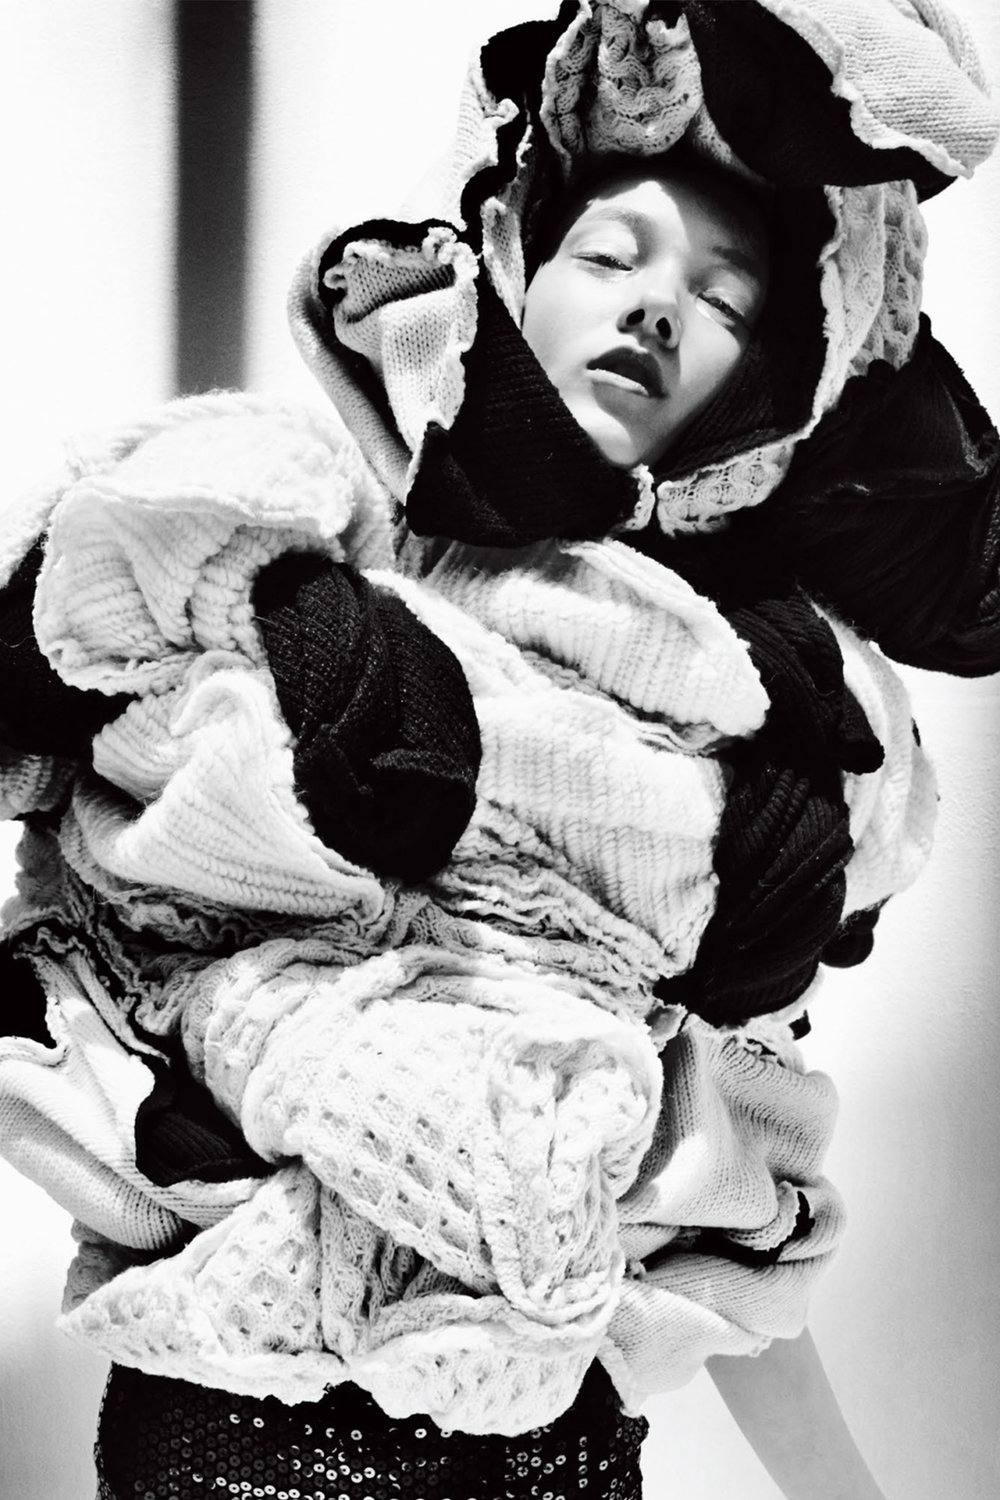 Comme des Garçons Obsession by Mario Testino for Vogue Japan 2014.jpg